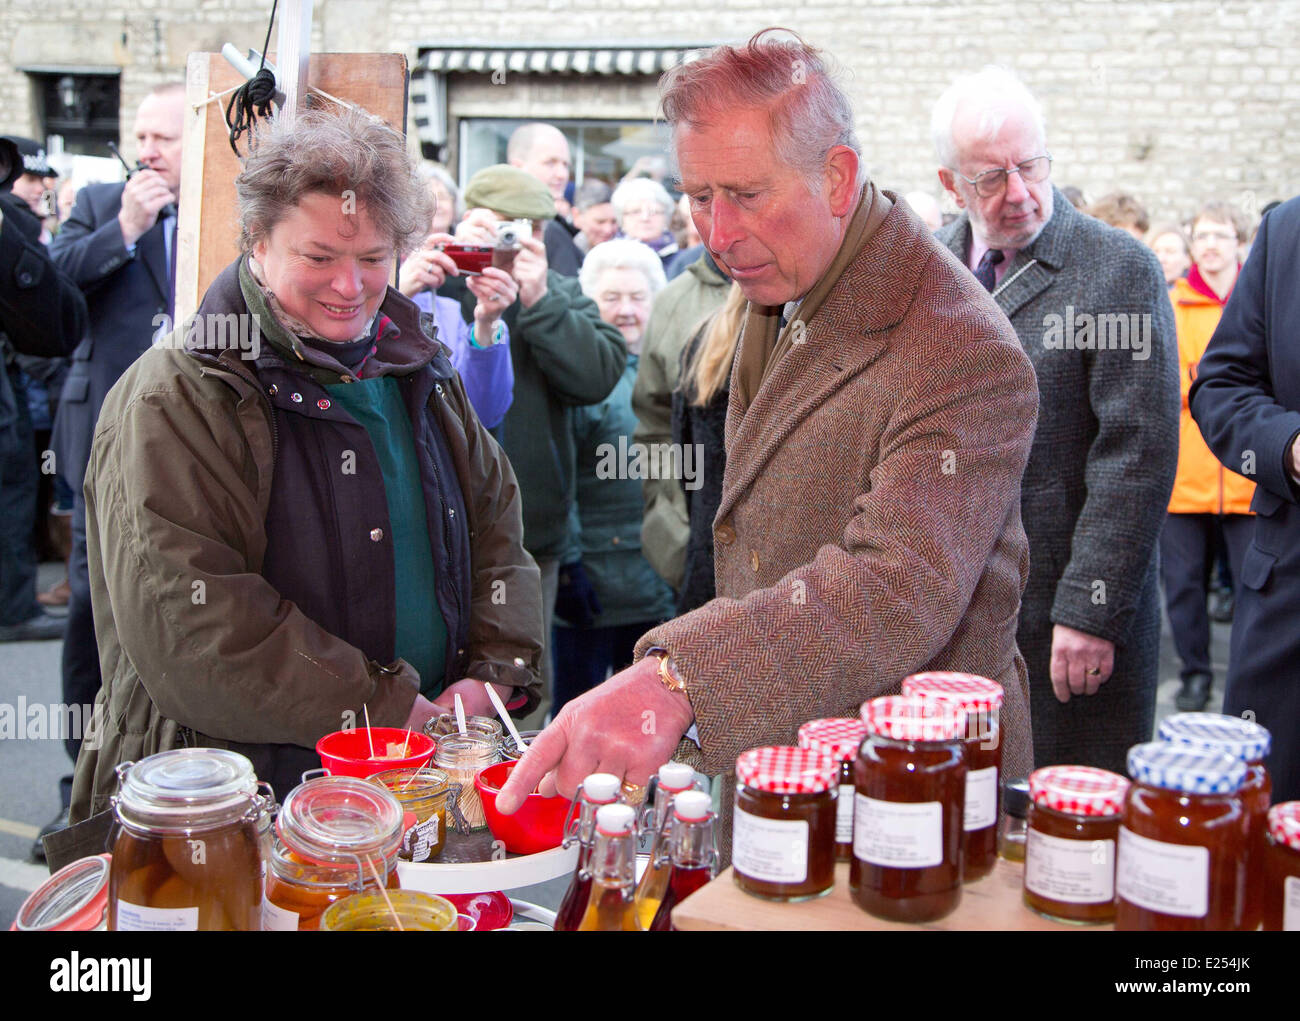 Prince Charles, Prince of Wales visits the Cumbrian market town of Kirkby Lonsdale. The Prince visited the market,( - Stock Image